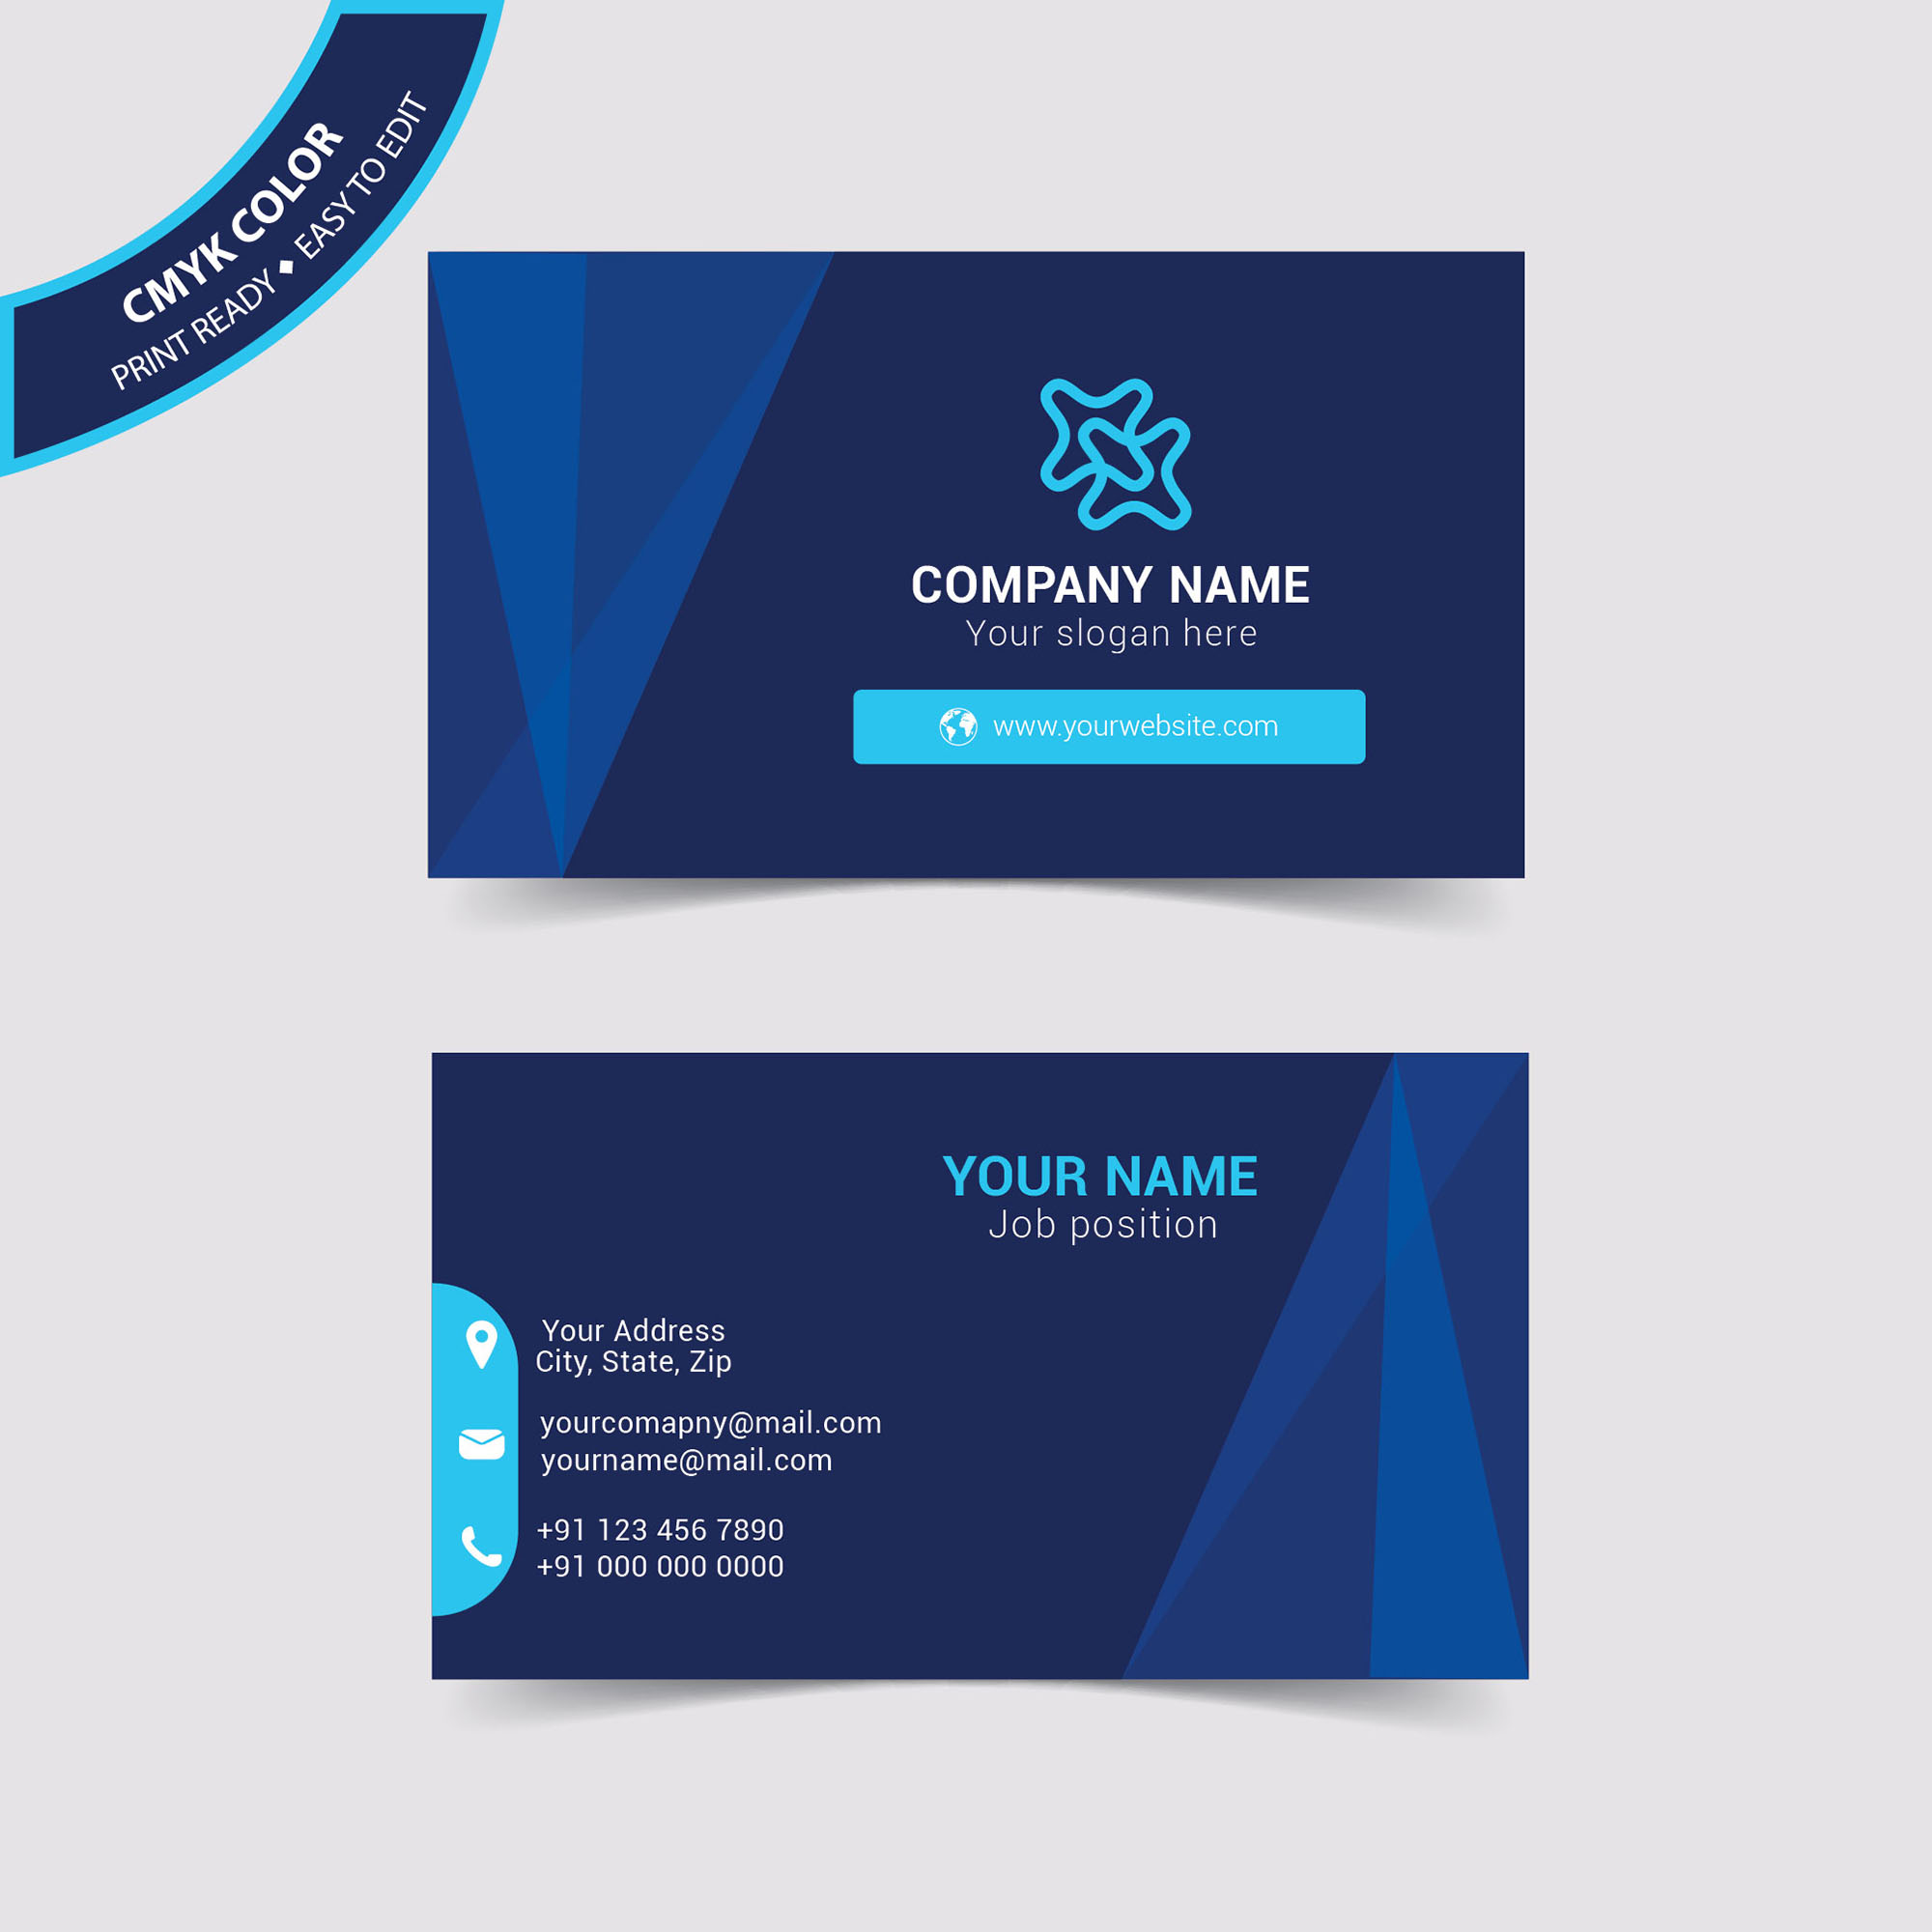 Blue creative business card design free download wisxi business card business cards business card design business card template design templates reheart Gallery